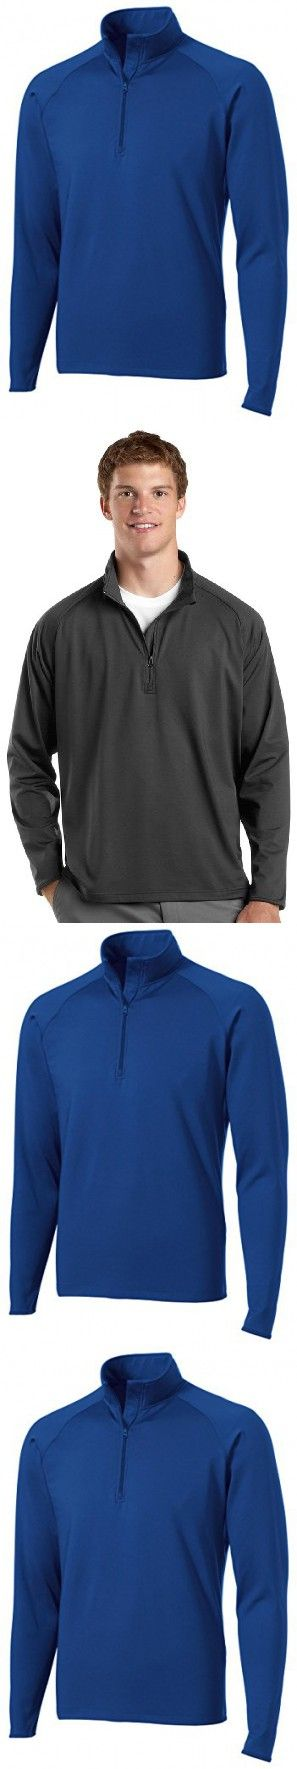 Sport-Tek Mens Sport-Wick Stretch 1/2-Zip Pullover, Large, True Royal